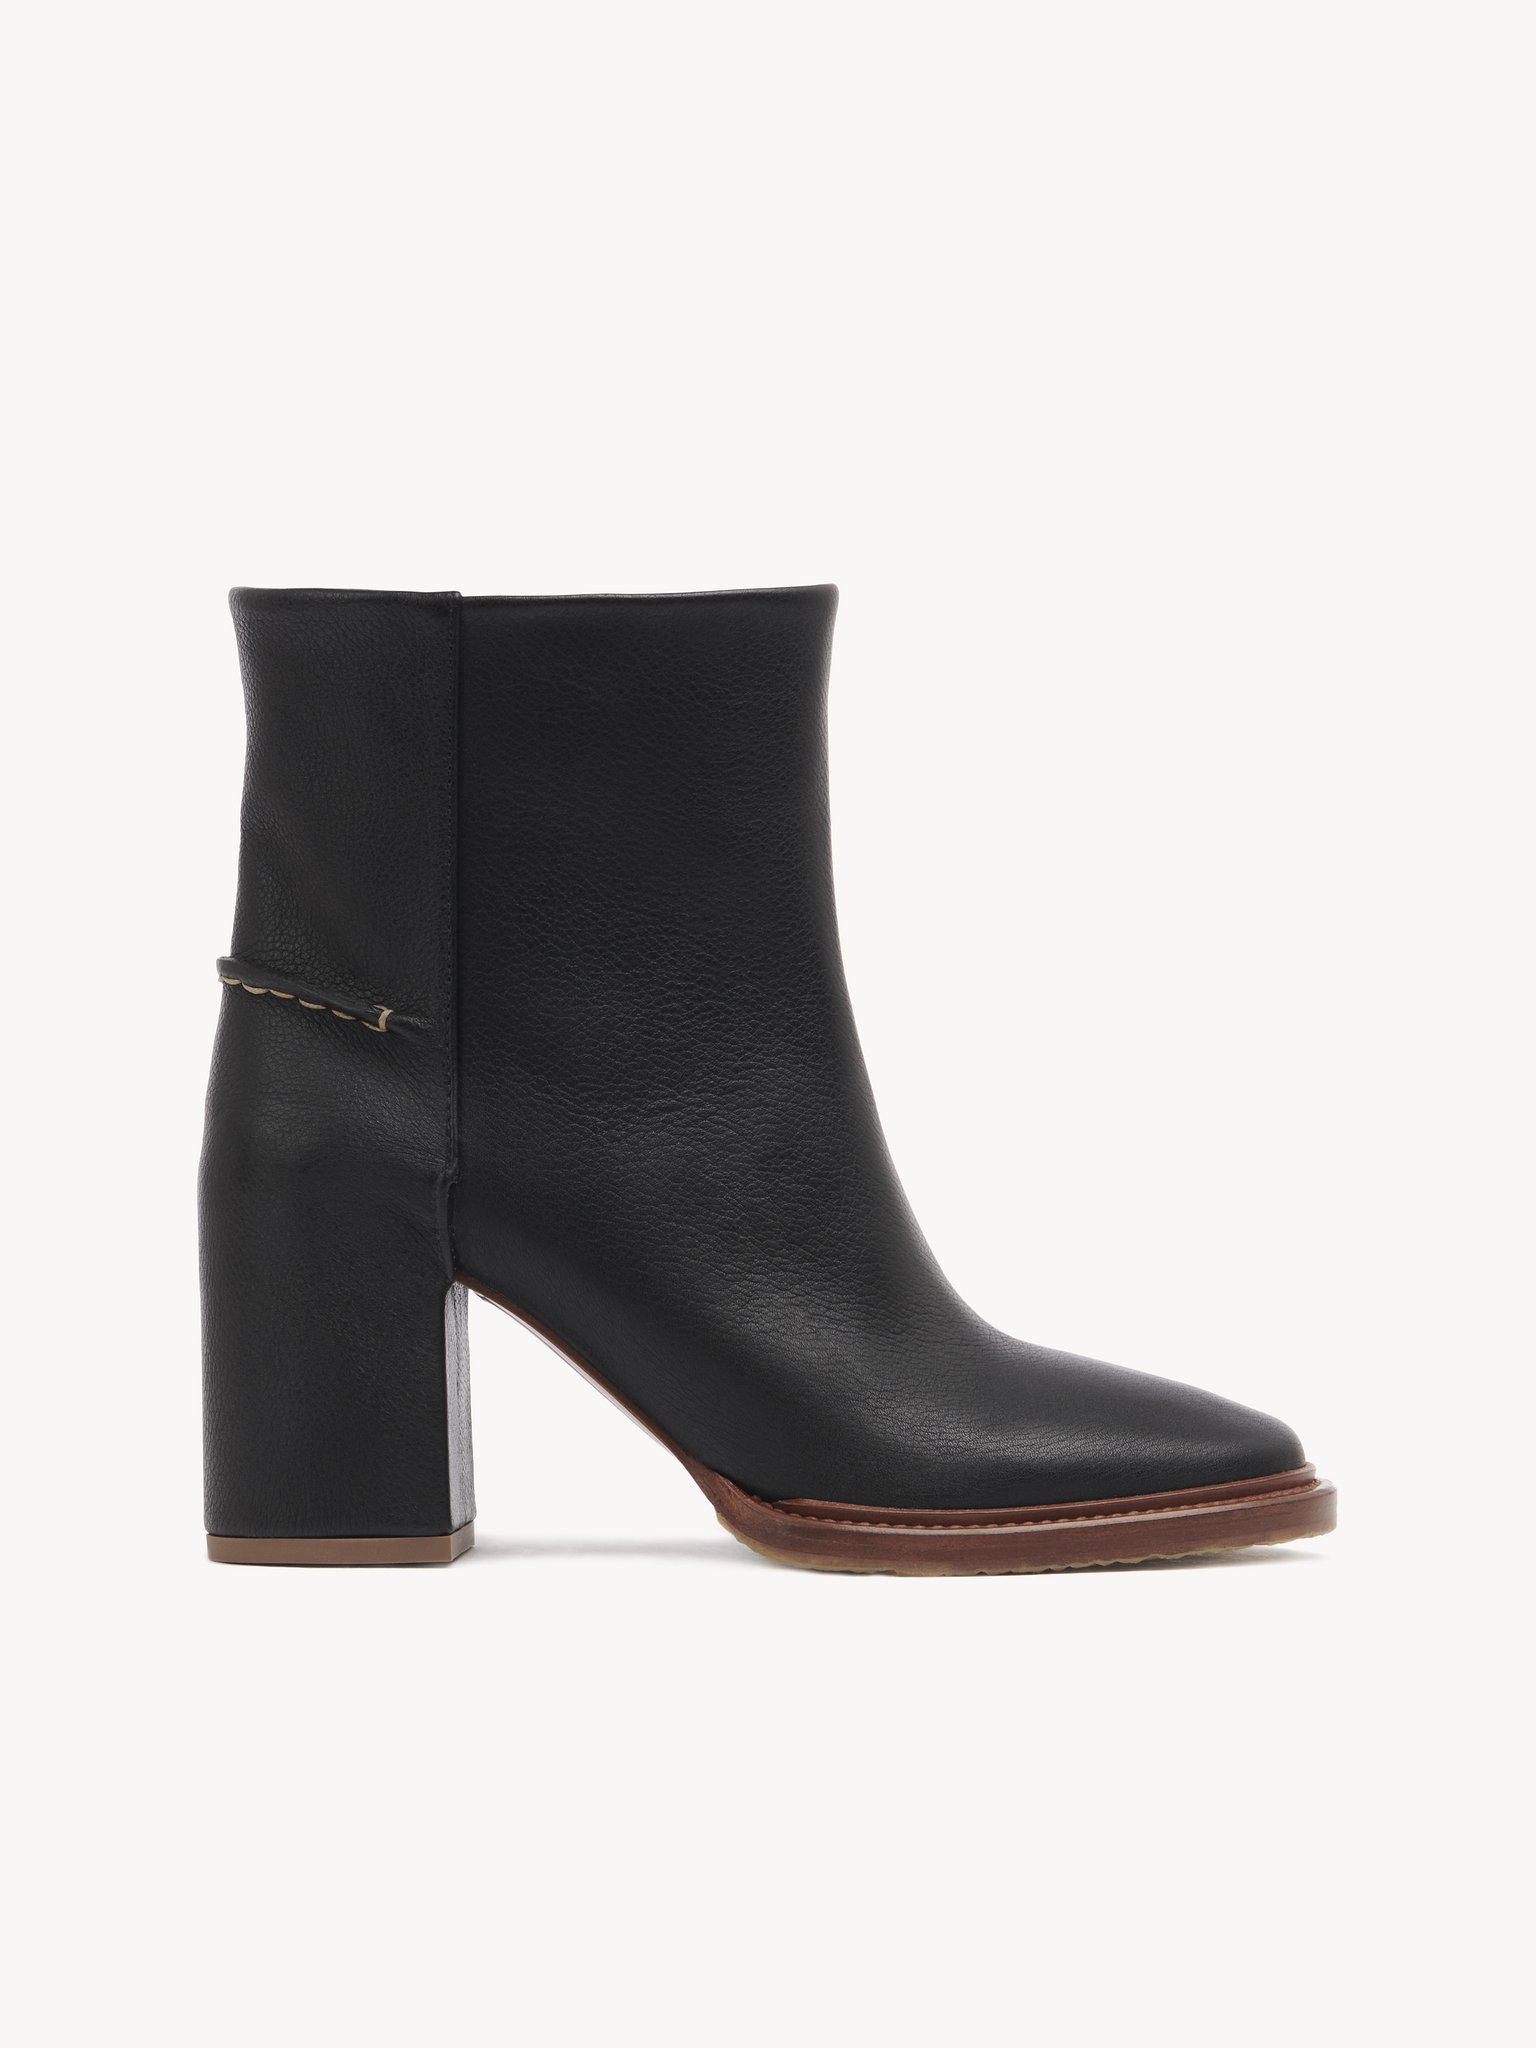 EDITH ANKLE BOOT